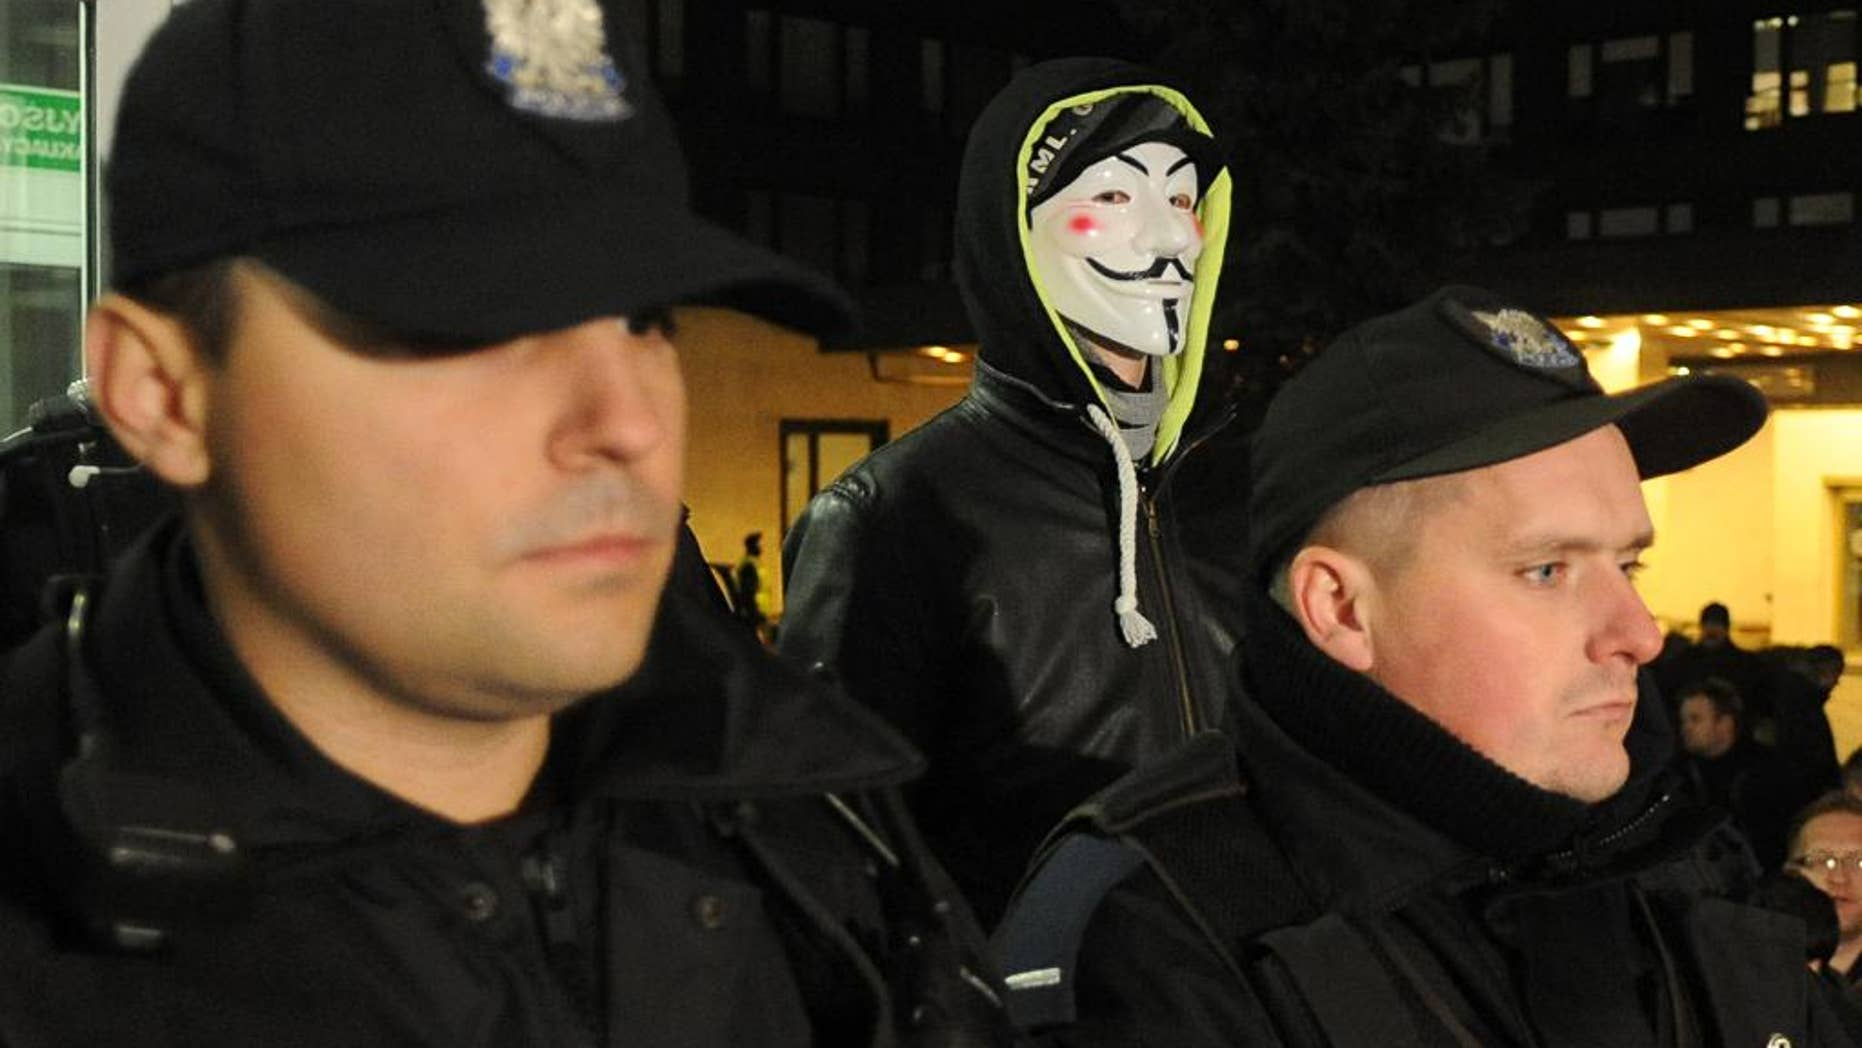 Police officers block the entrance to the National Electoral Office as a man wearing a mask stands behind, in Warsaw, Poland, Thursday, Nov. 20, 2014. Earlier a group of right wing activists entered the building and began to occupy it demanding the members of the National Electoral Office to resign. Prosecutors are investigating a hacking attack on the website of Poland's voting commission, while a top official has resigned over irregularities that are delaying the vote count in recent local elections. (AP Photo/Alik Keplicz)